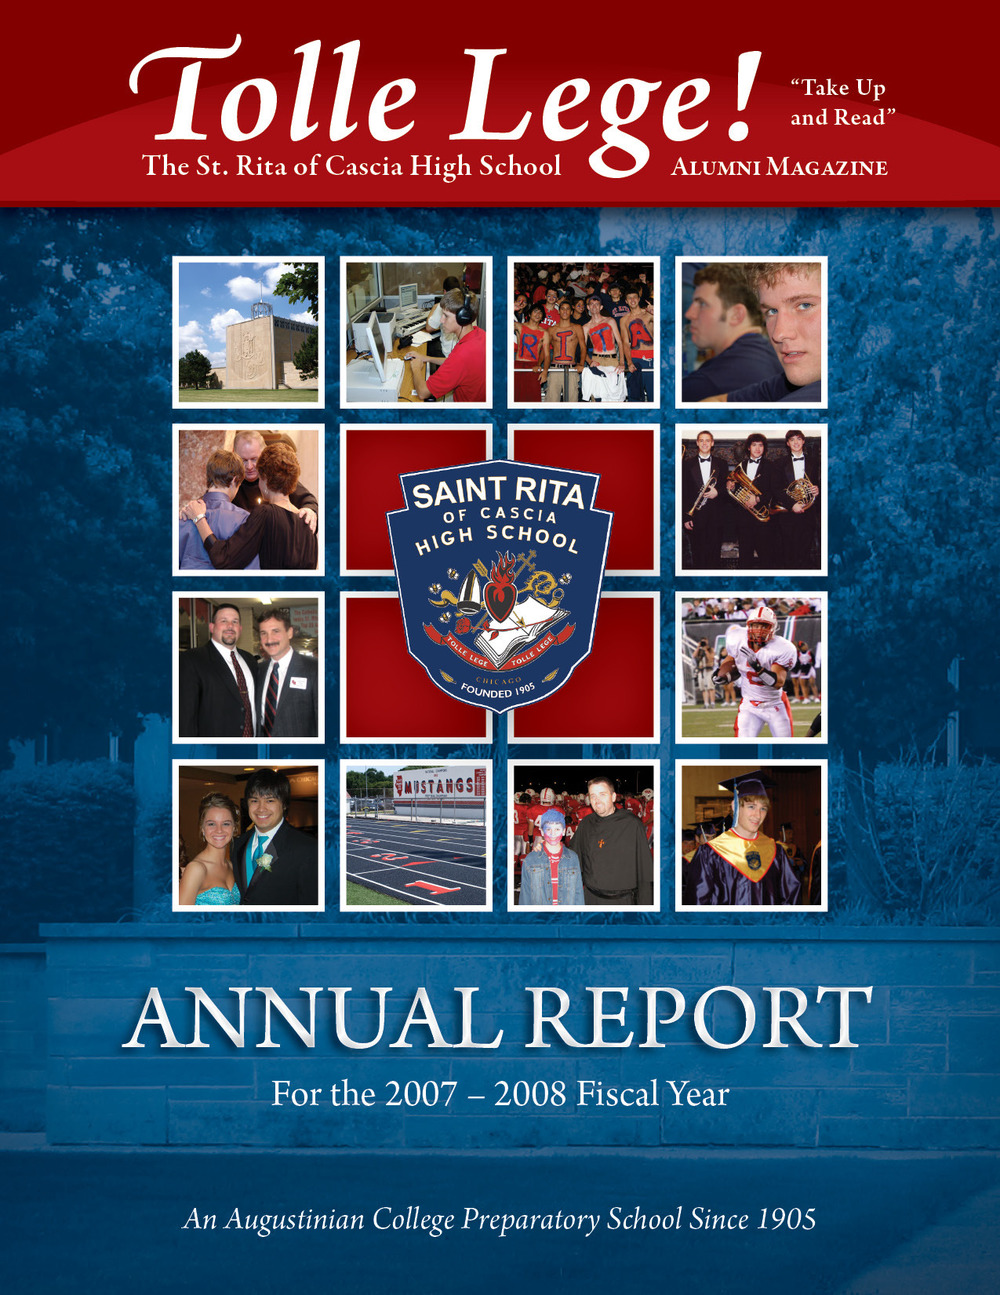 01 SR Annual Report.jpg